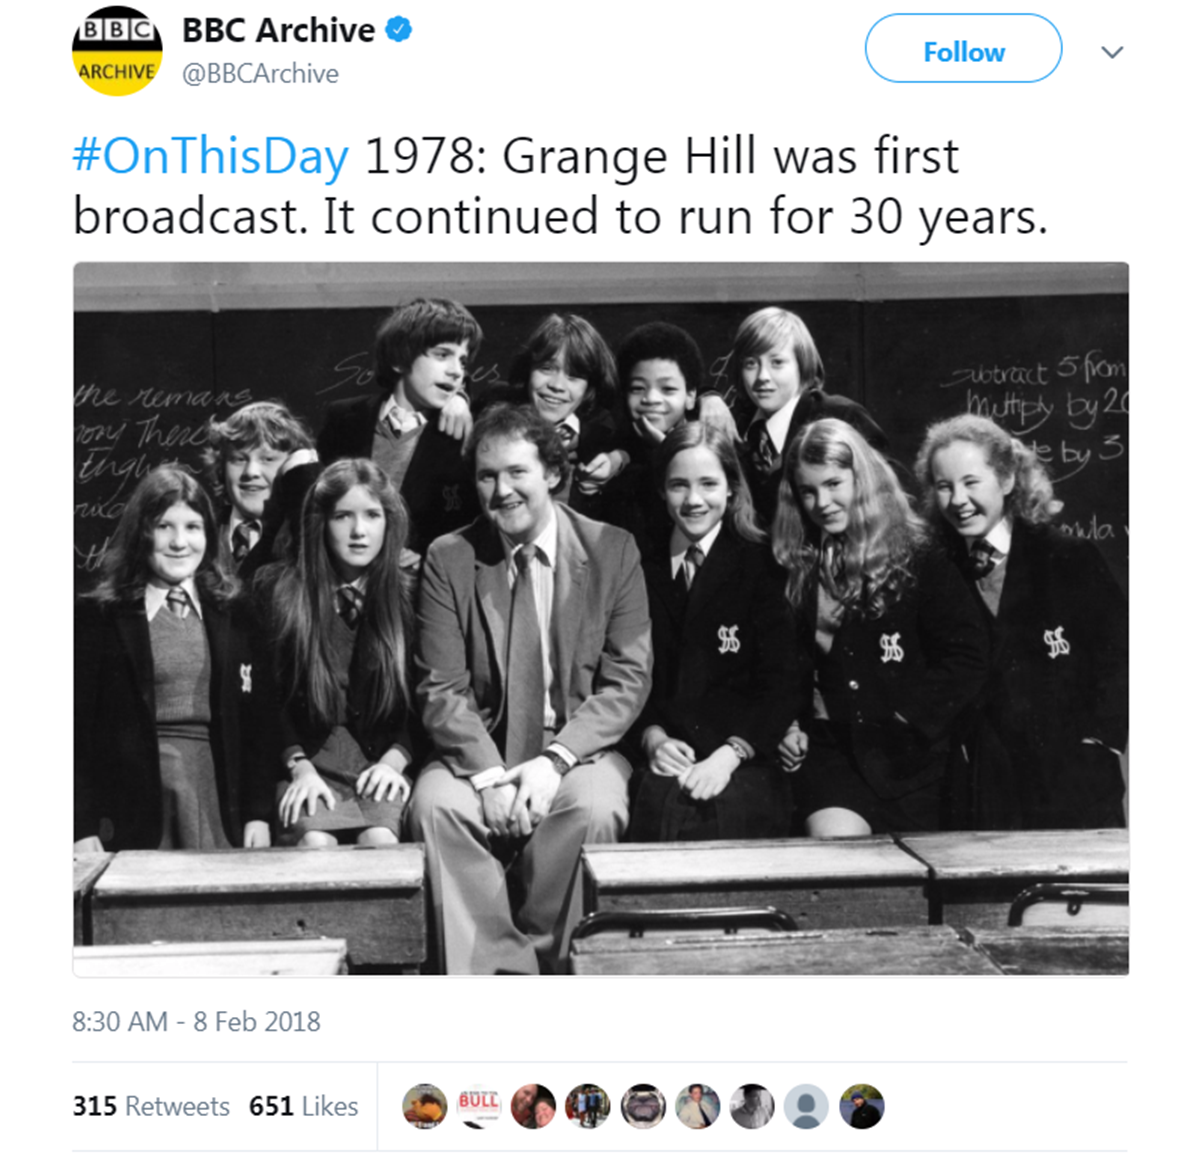 3 3 Grange Hill Fans Share Their Memories On The Show's 40th Anniversary